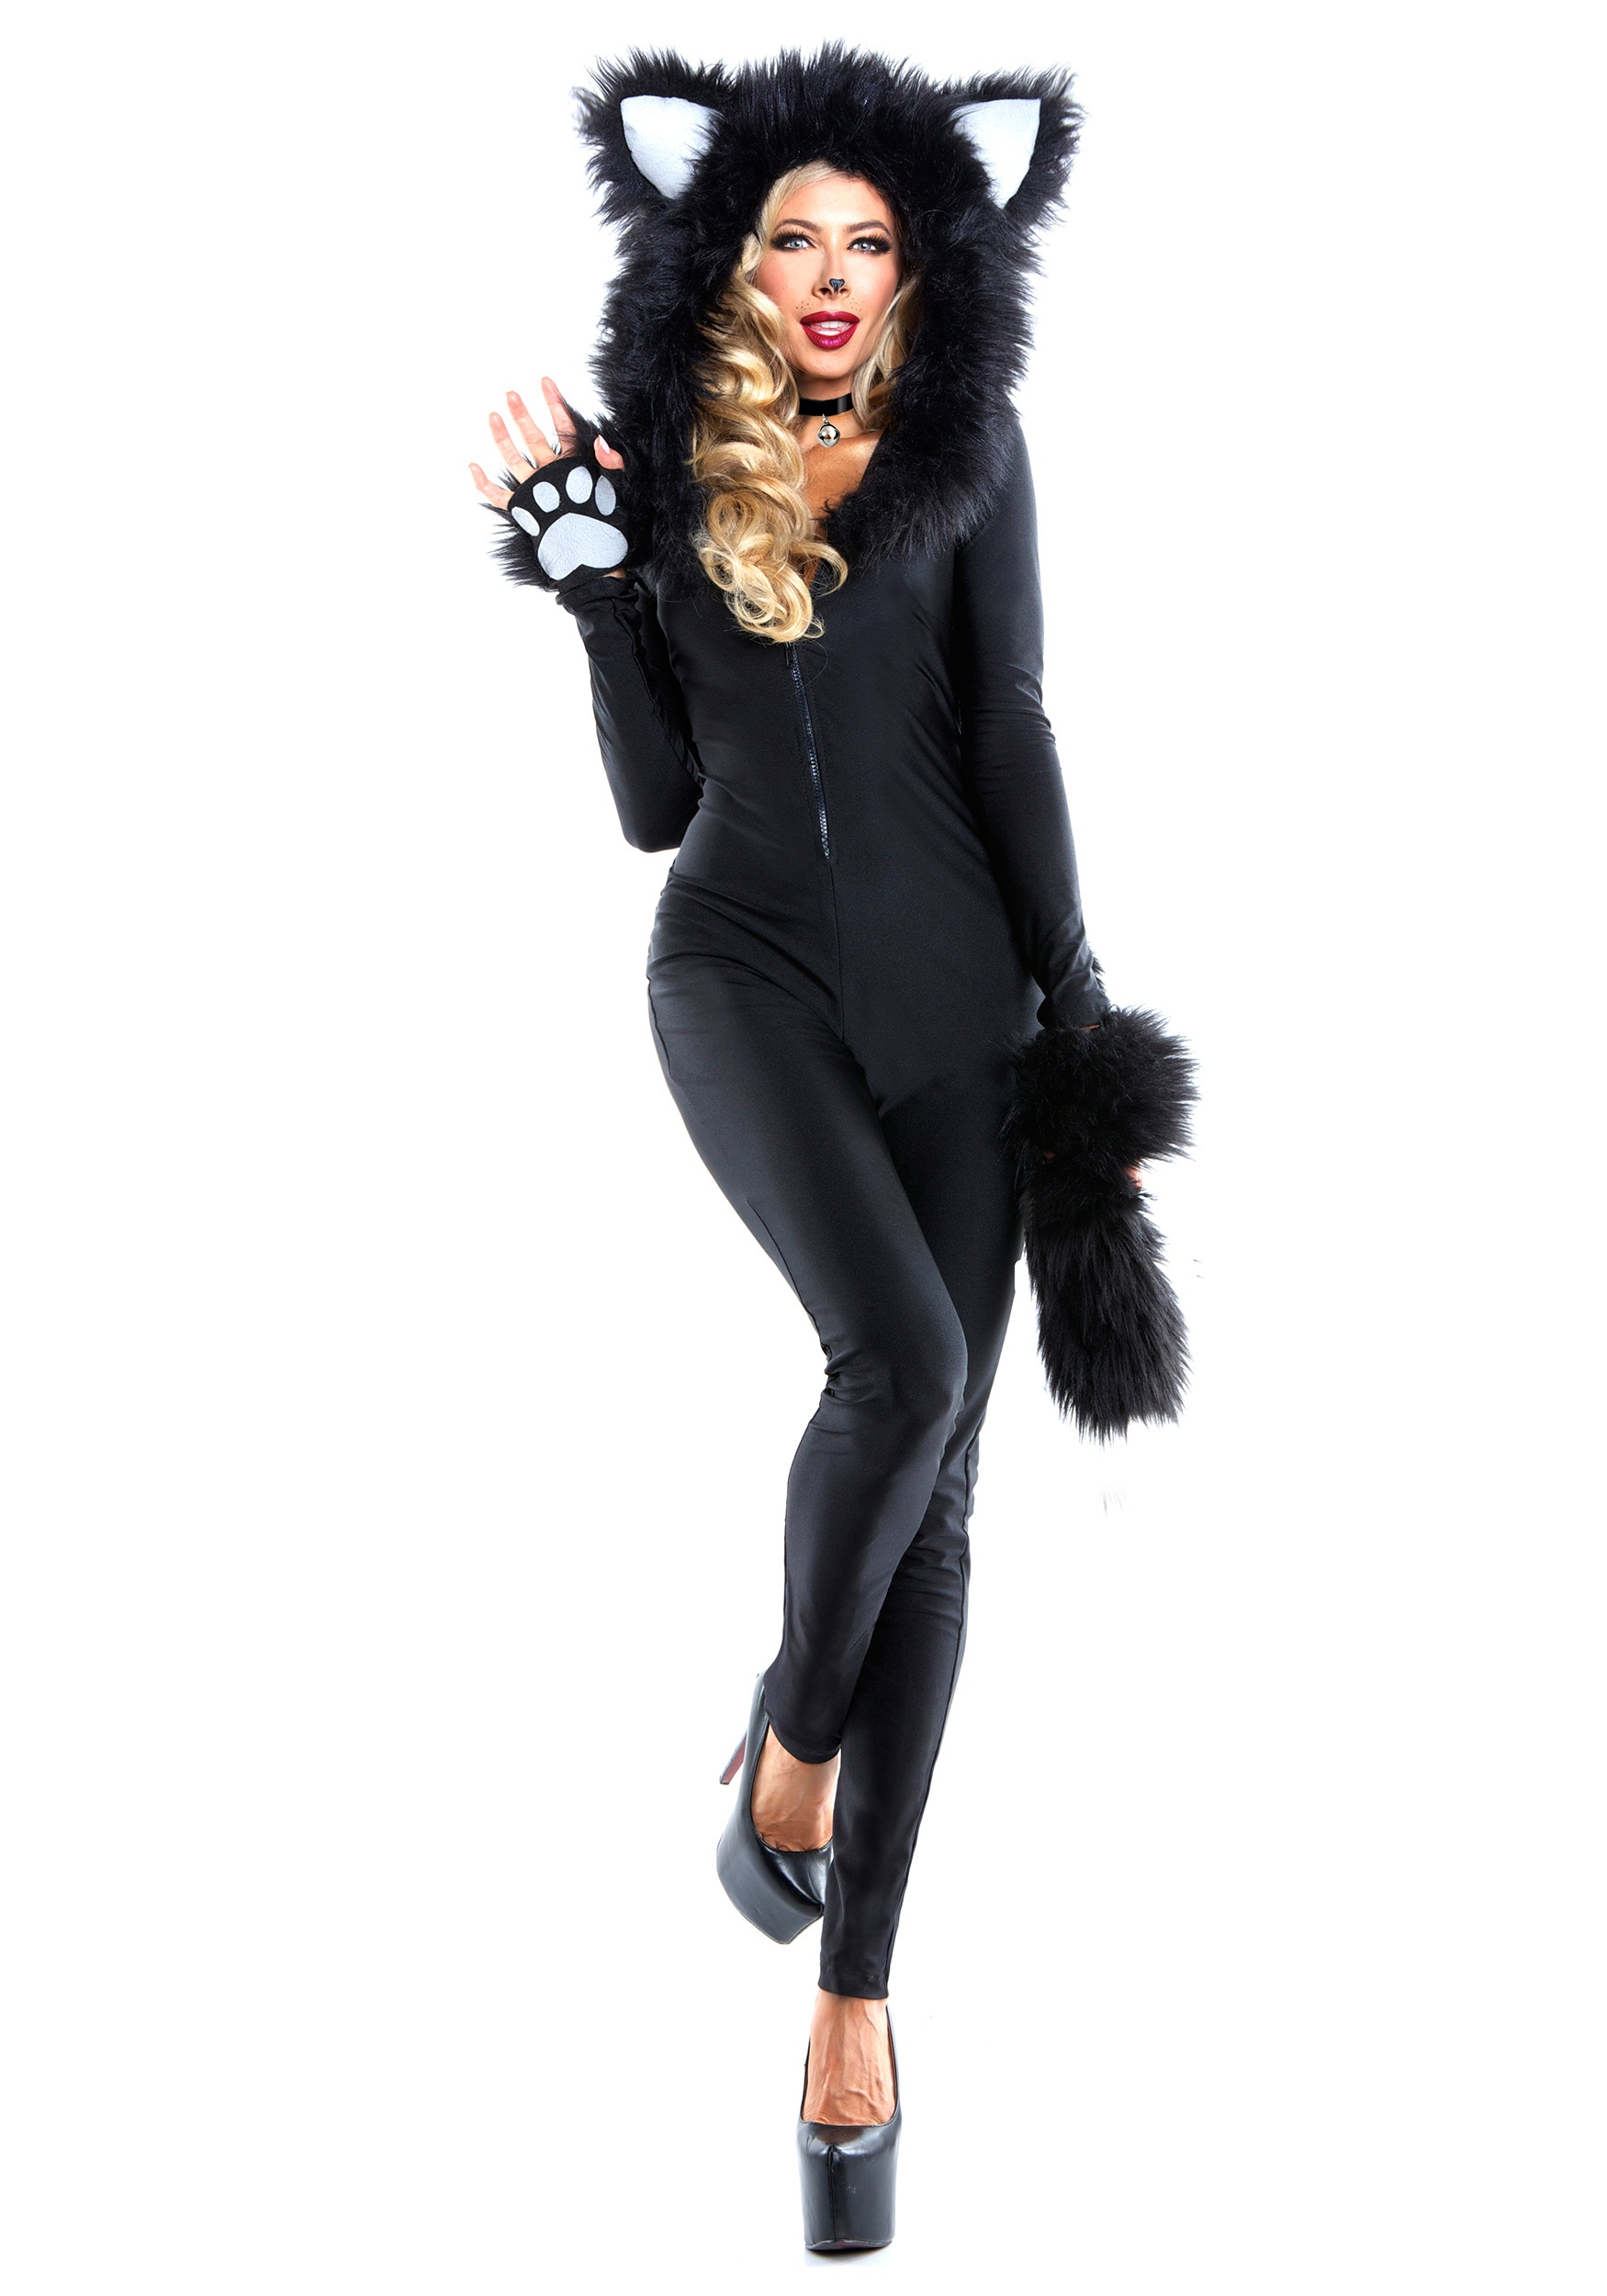 Women's Furry Feline Costume